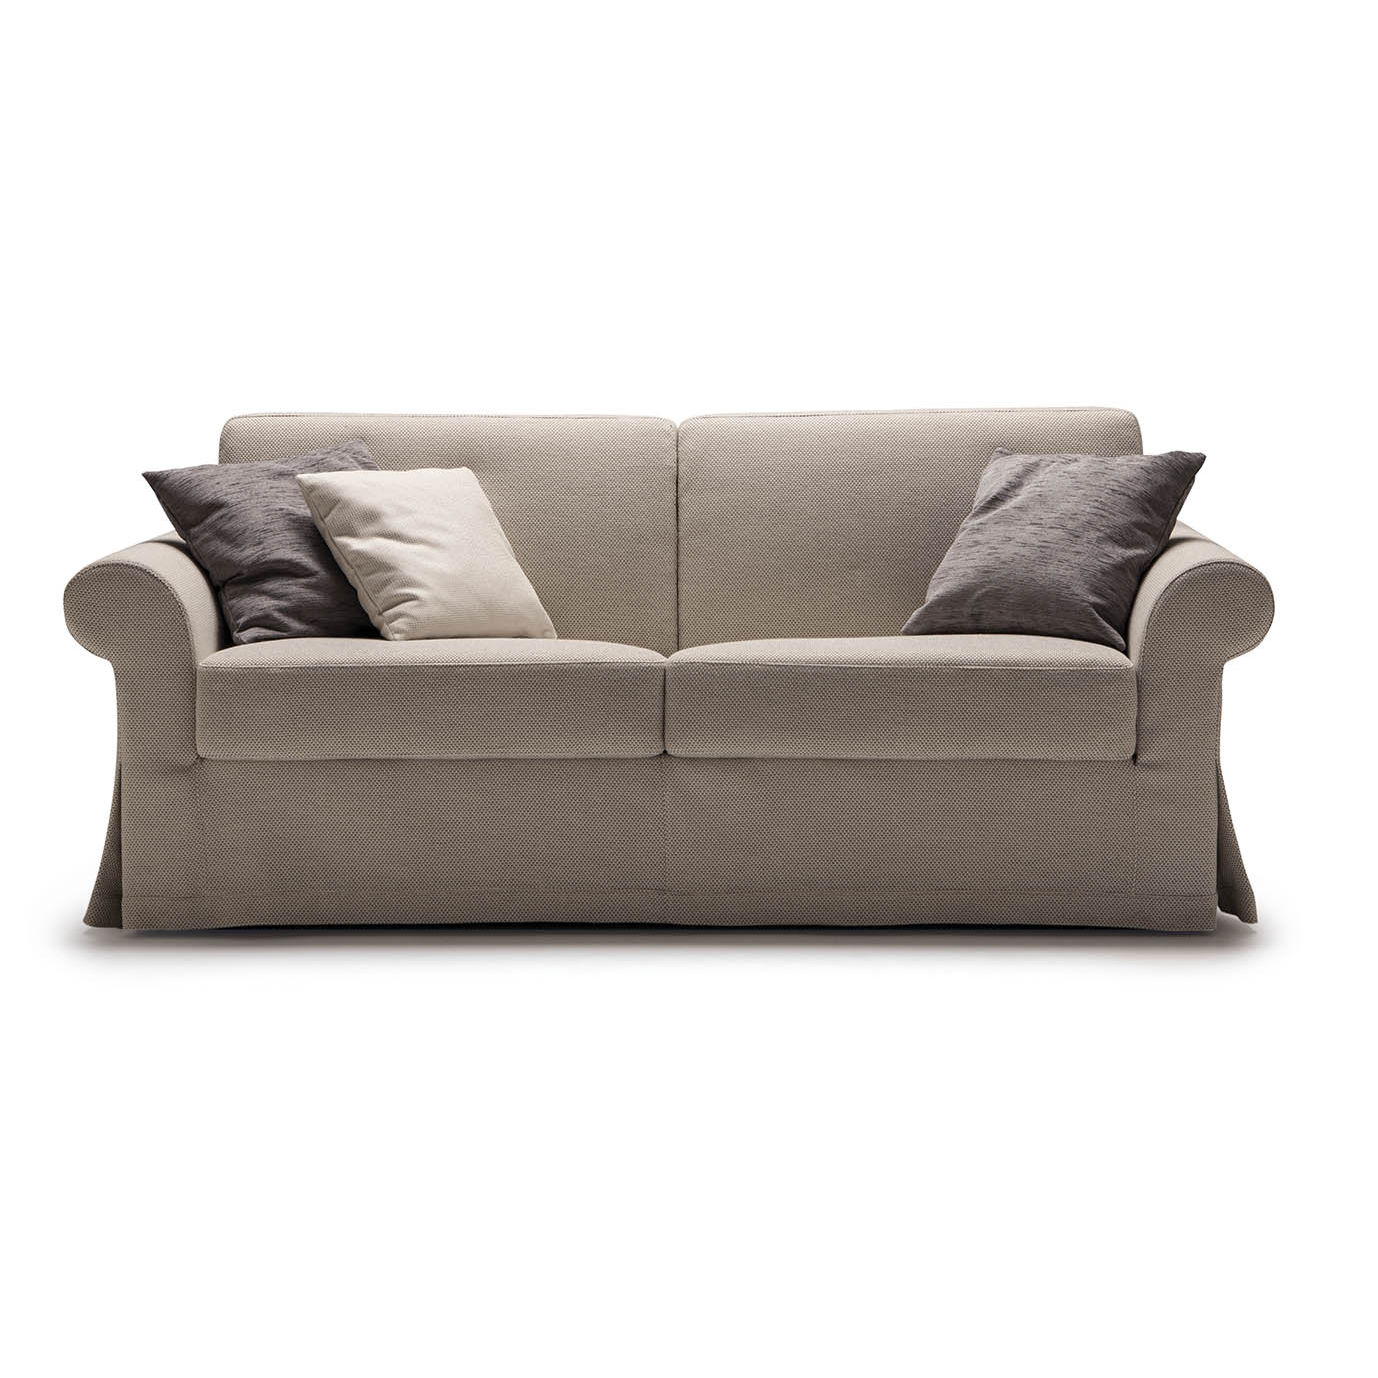 Sofa Bed / Traditional / Fabric / 2 Person   ELLIS 5